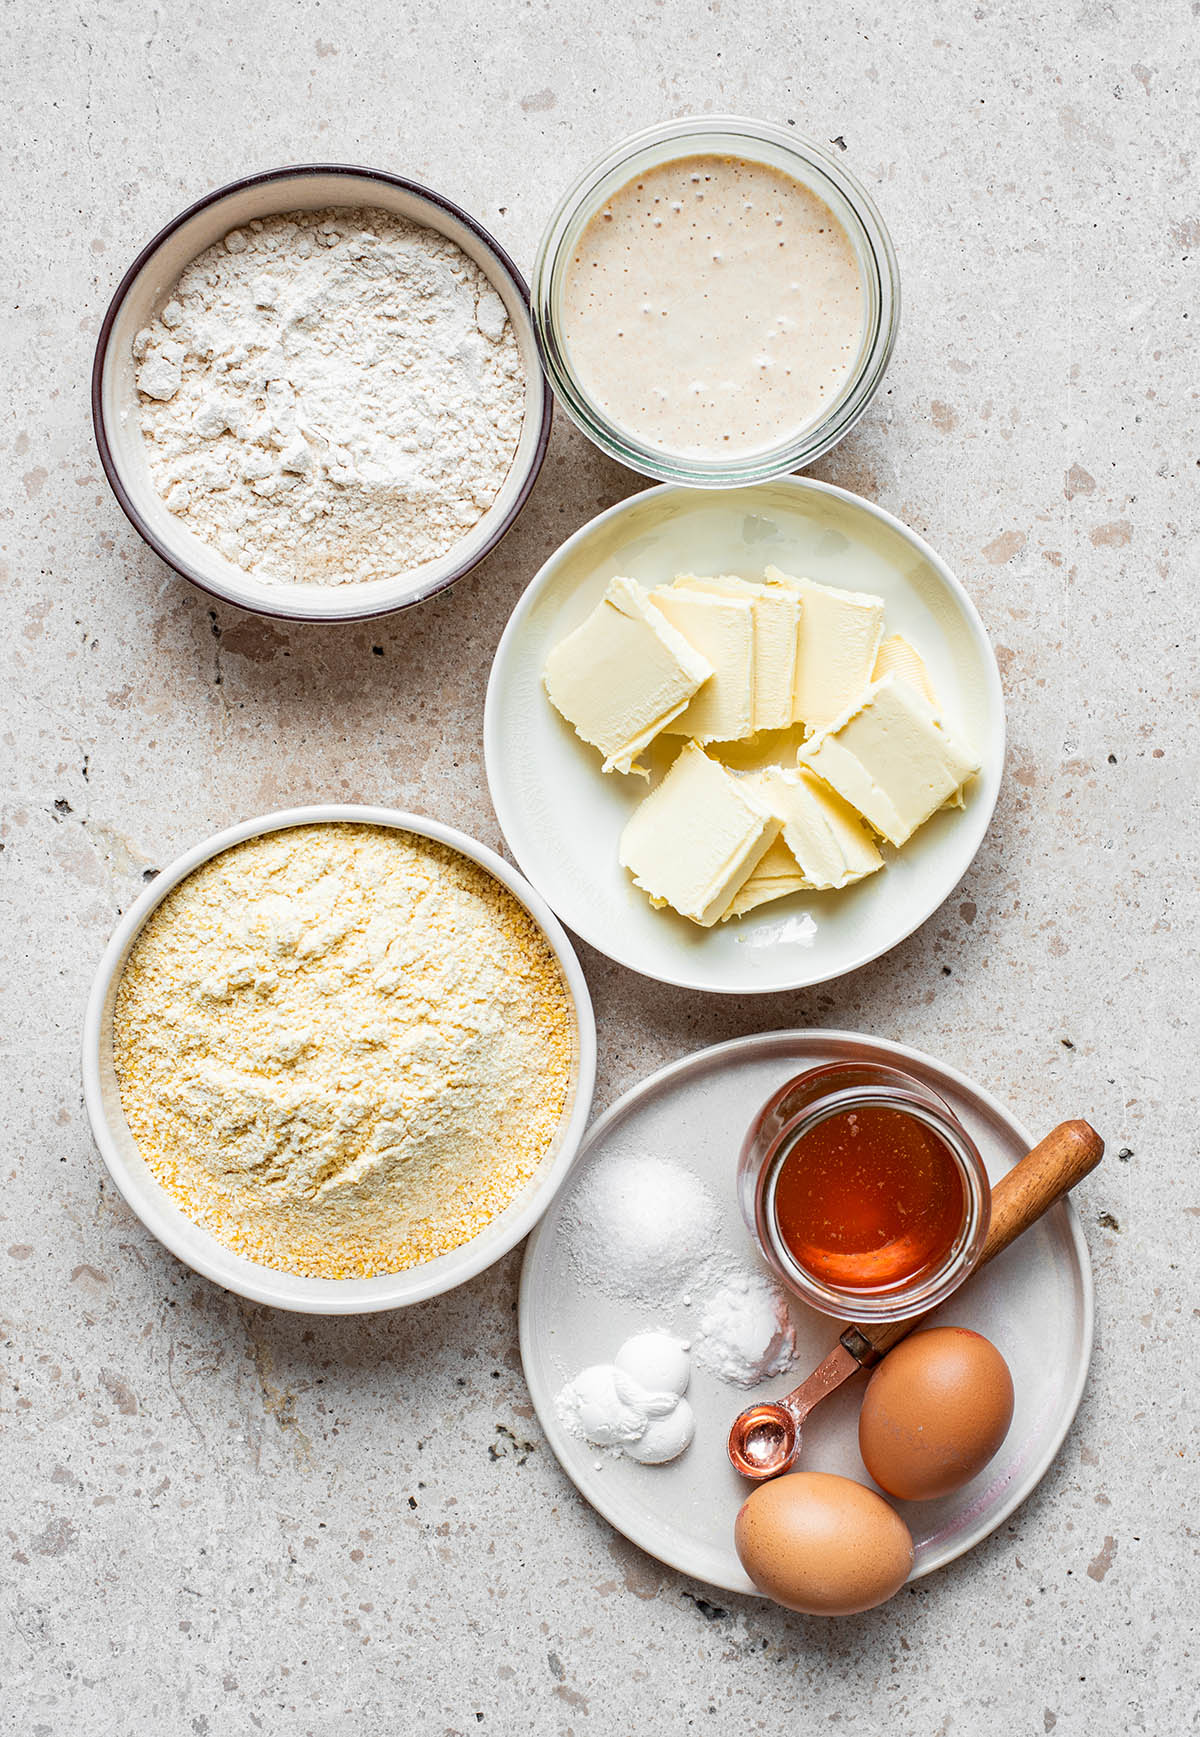 Sourdough cornbread ingredients: discard, flour, cornmeal, butter, honey, salt, baking soda, baking powder, and eggs.